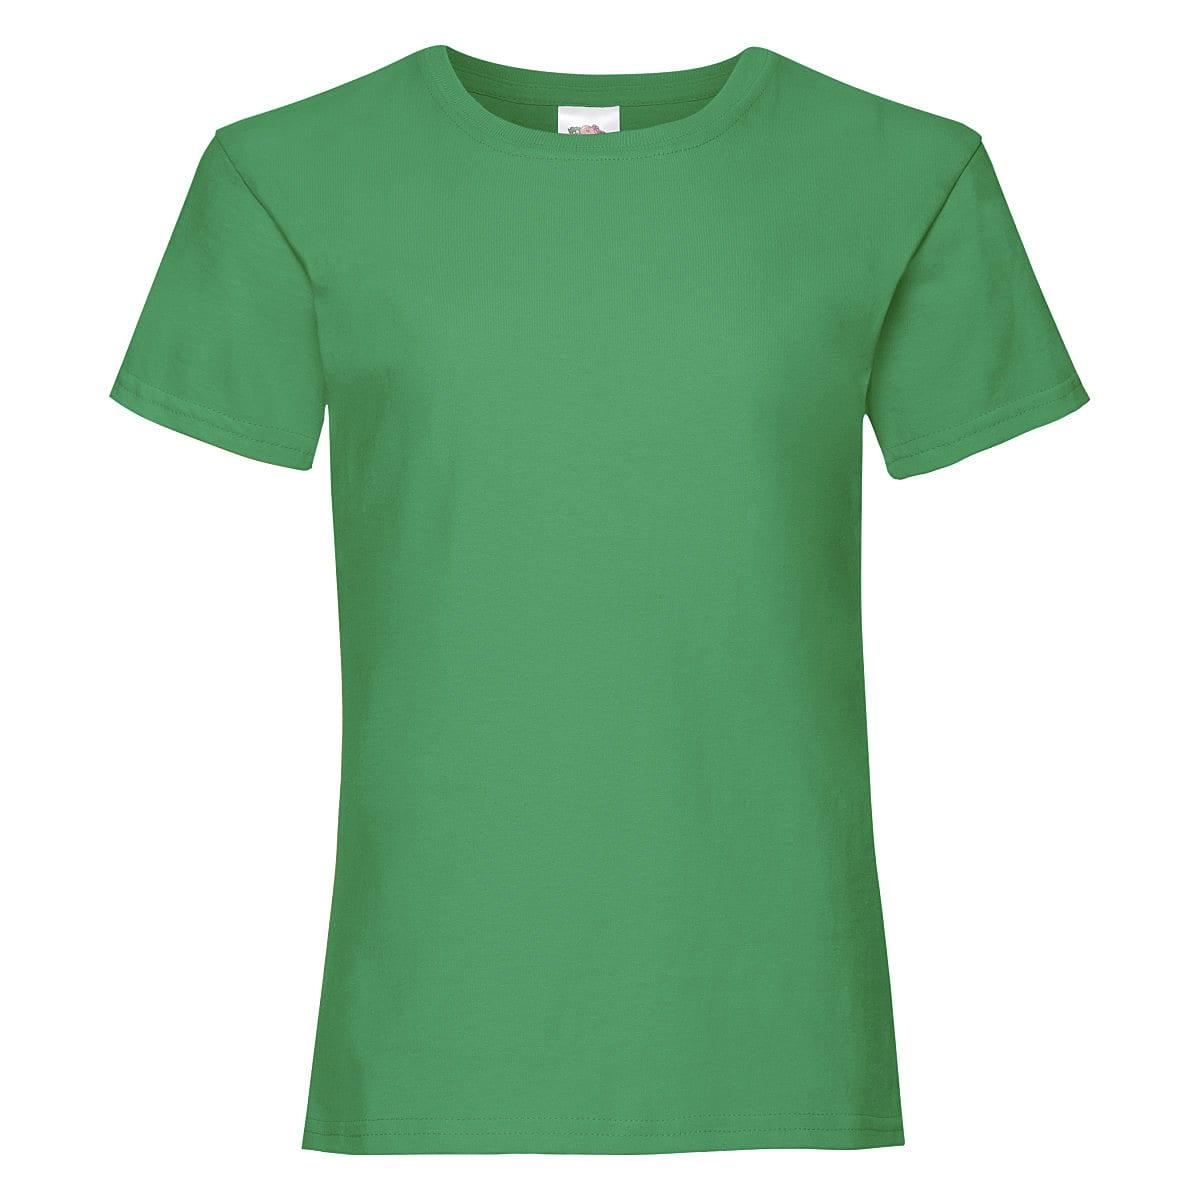 Fruit Of The Loom Girls Valueweight T-Shirt in Kelly Green (Product Code: 61005)